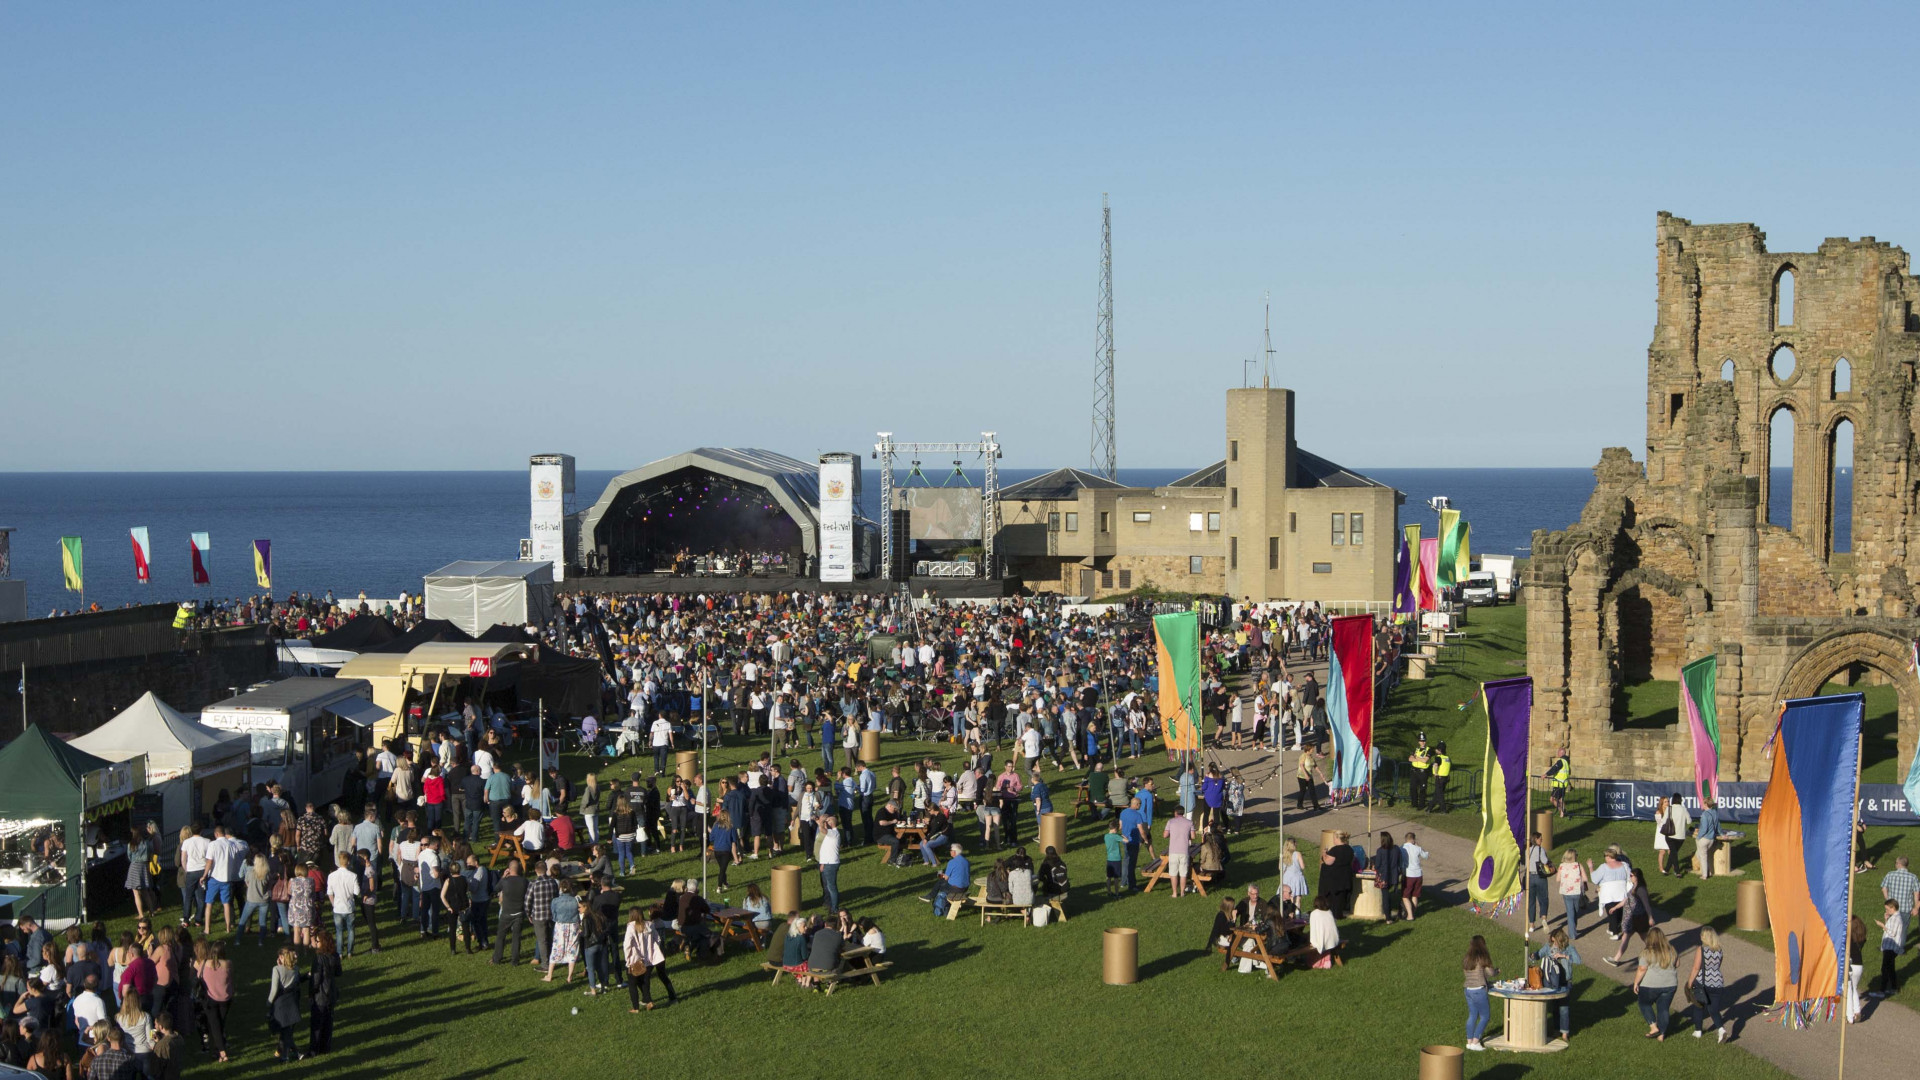 Mouth of the Tyne festival is set in Newcastle